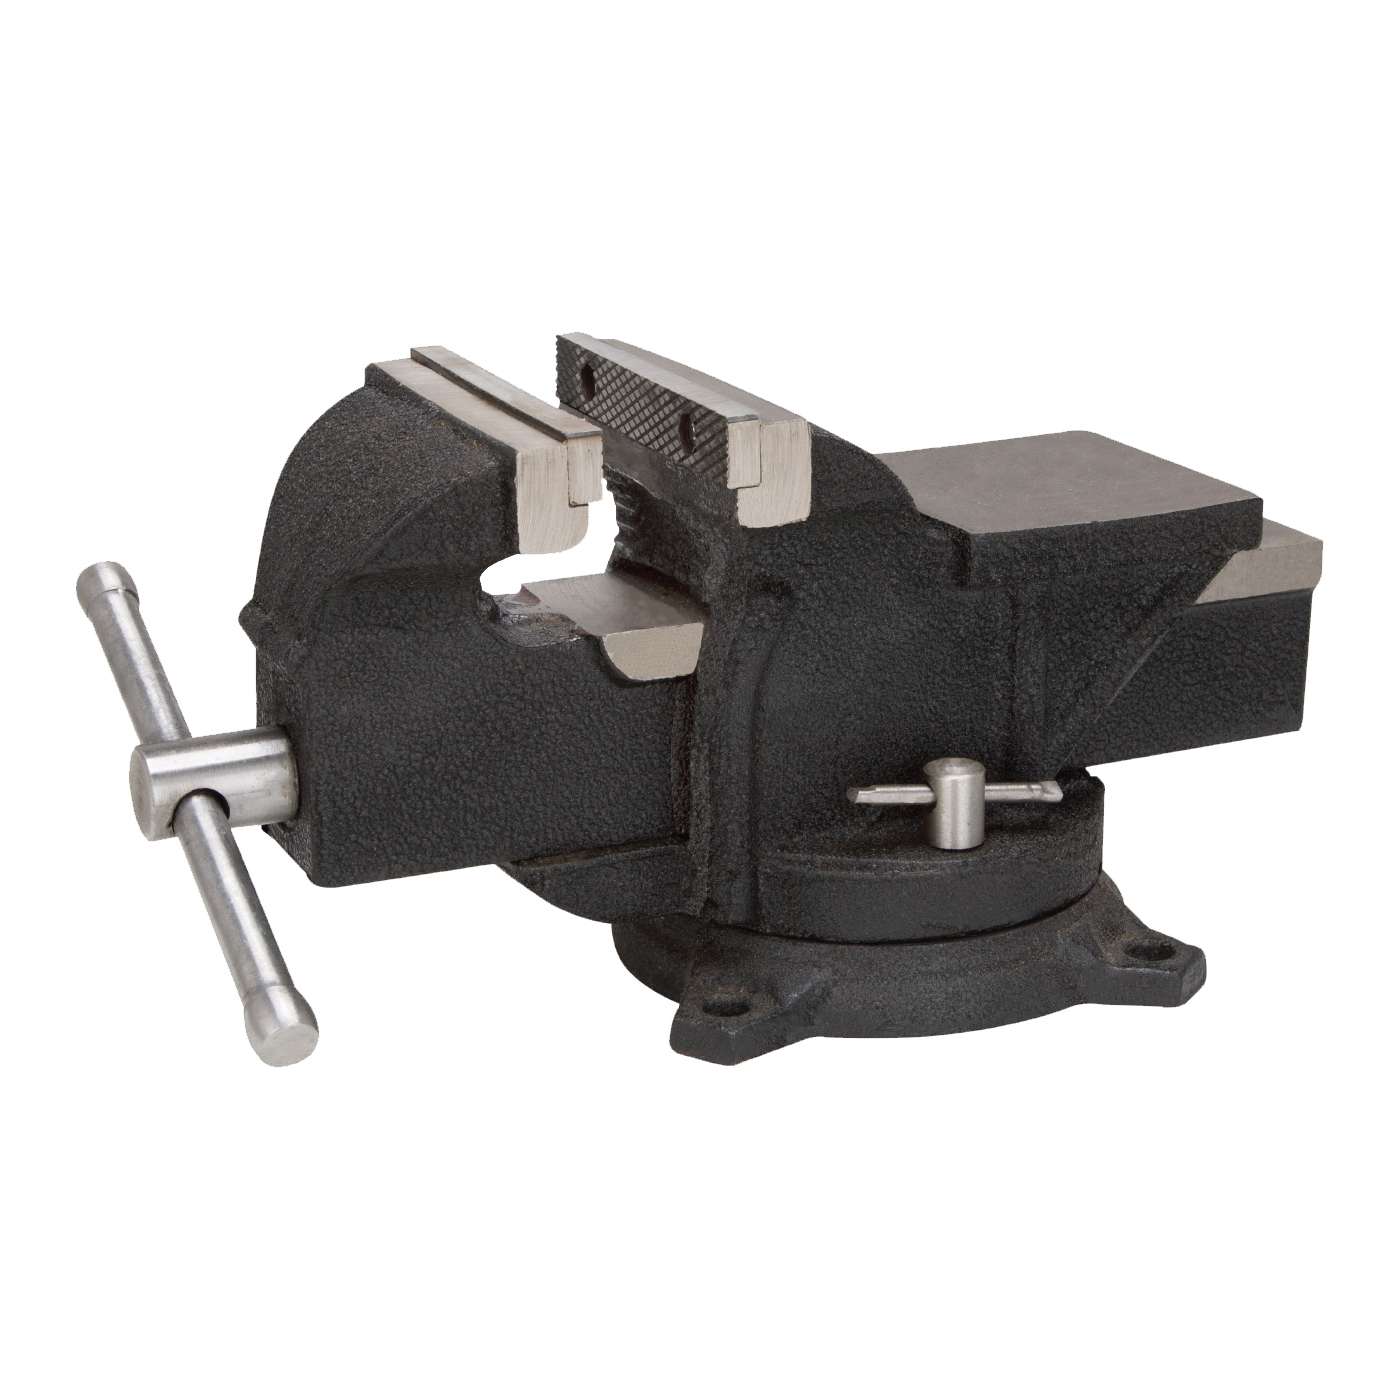 Picture of Vulcan JL25012 Bench Vise, 5 in Jaw Opening, Iron/Steel, Serrated Jaw